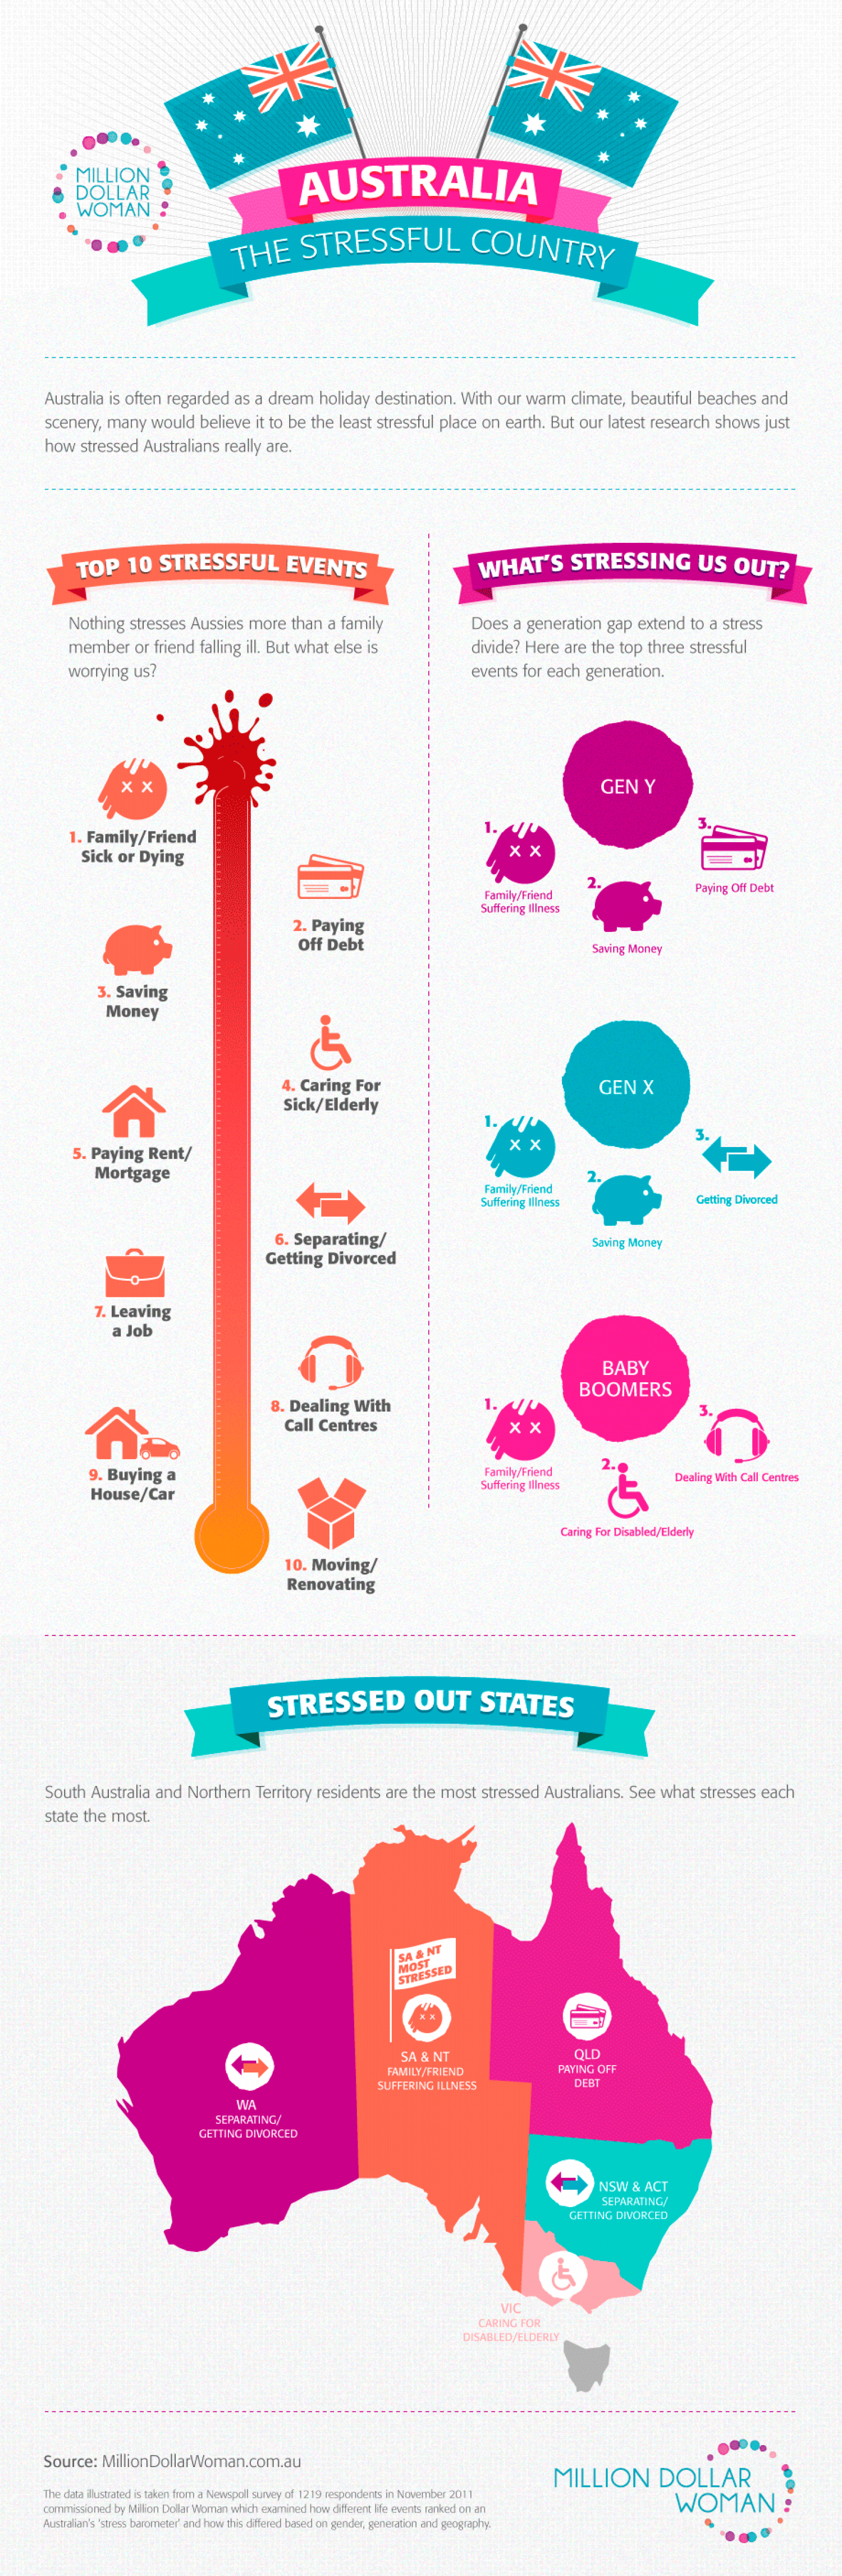 Australia - The Stressful Country Infographic